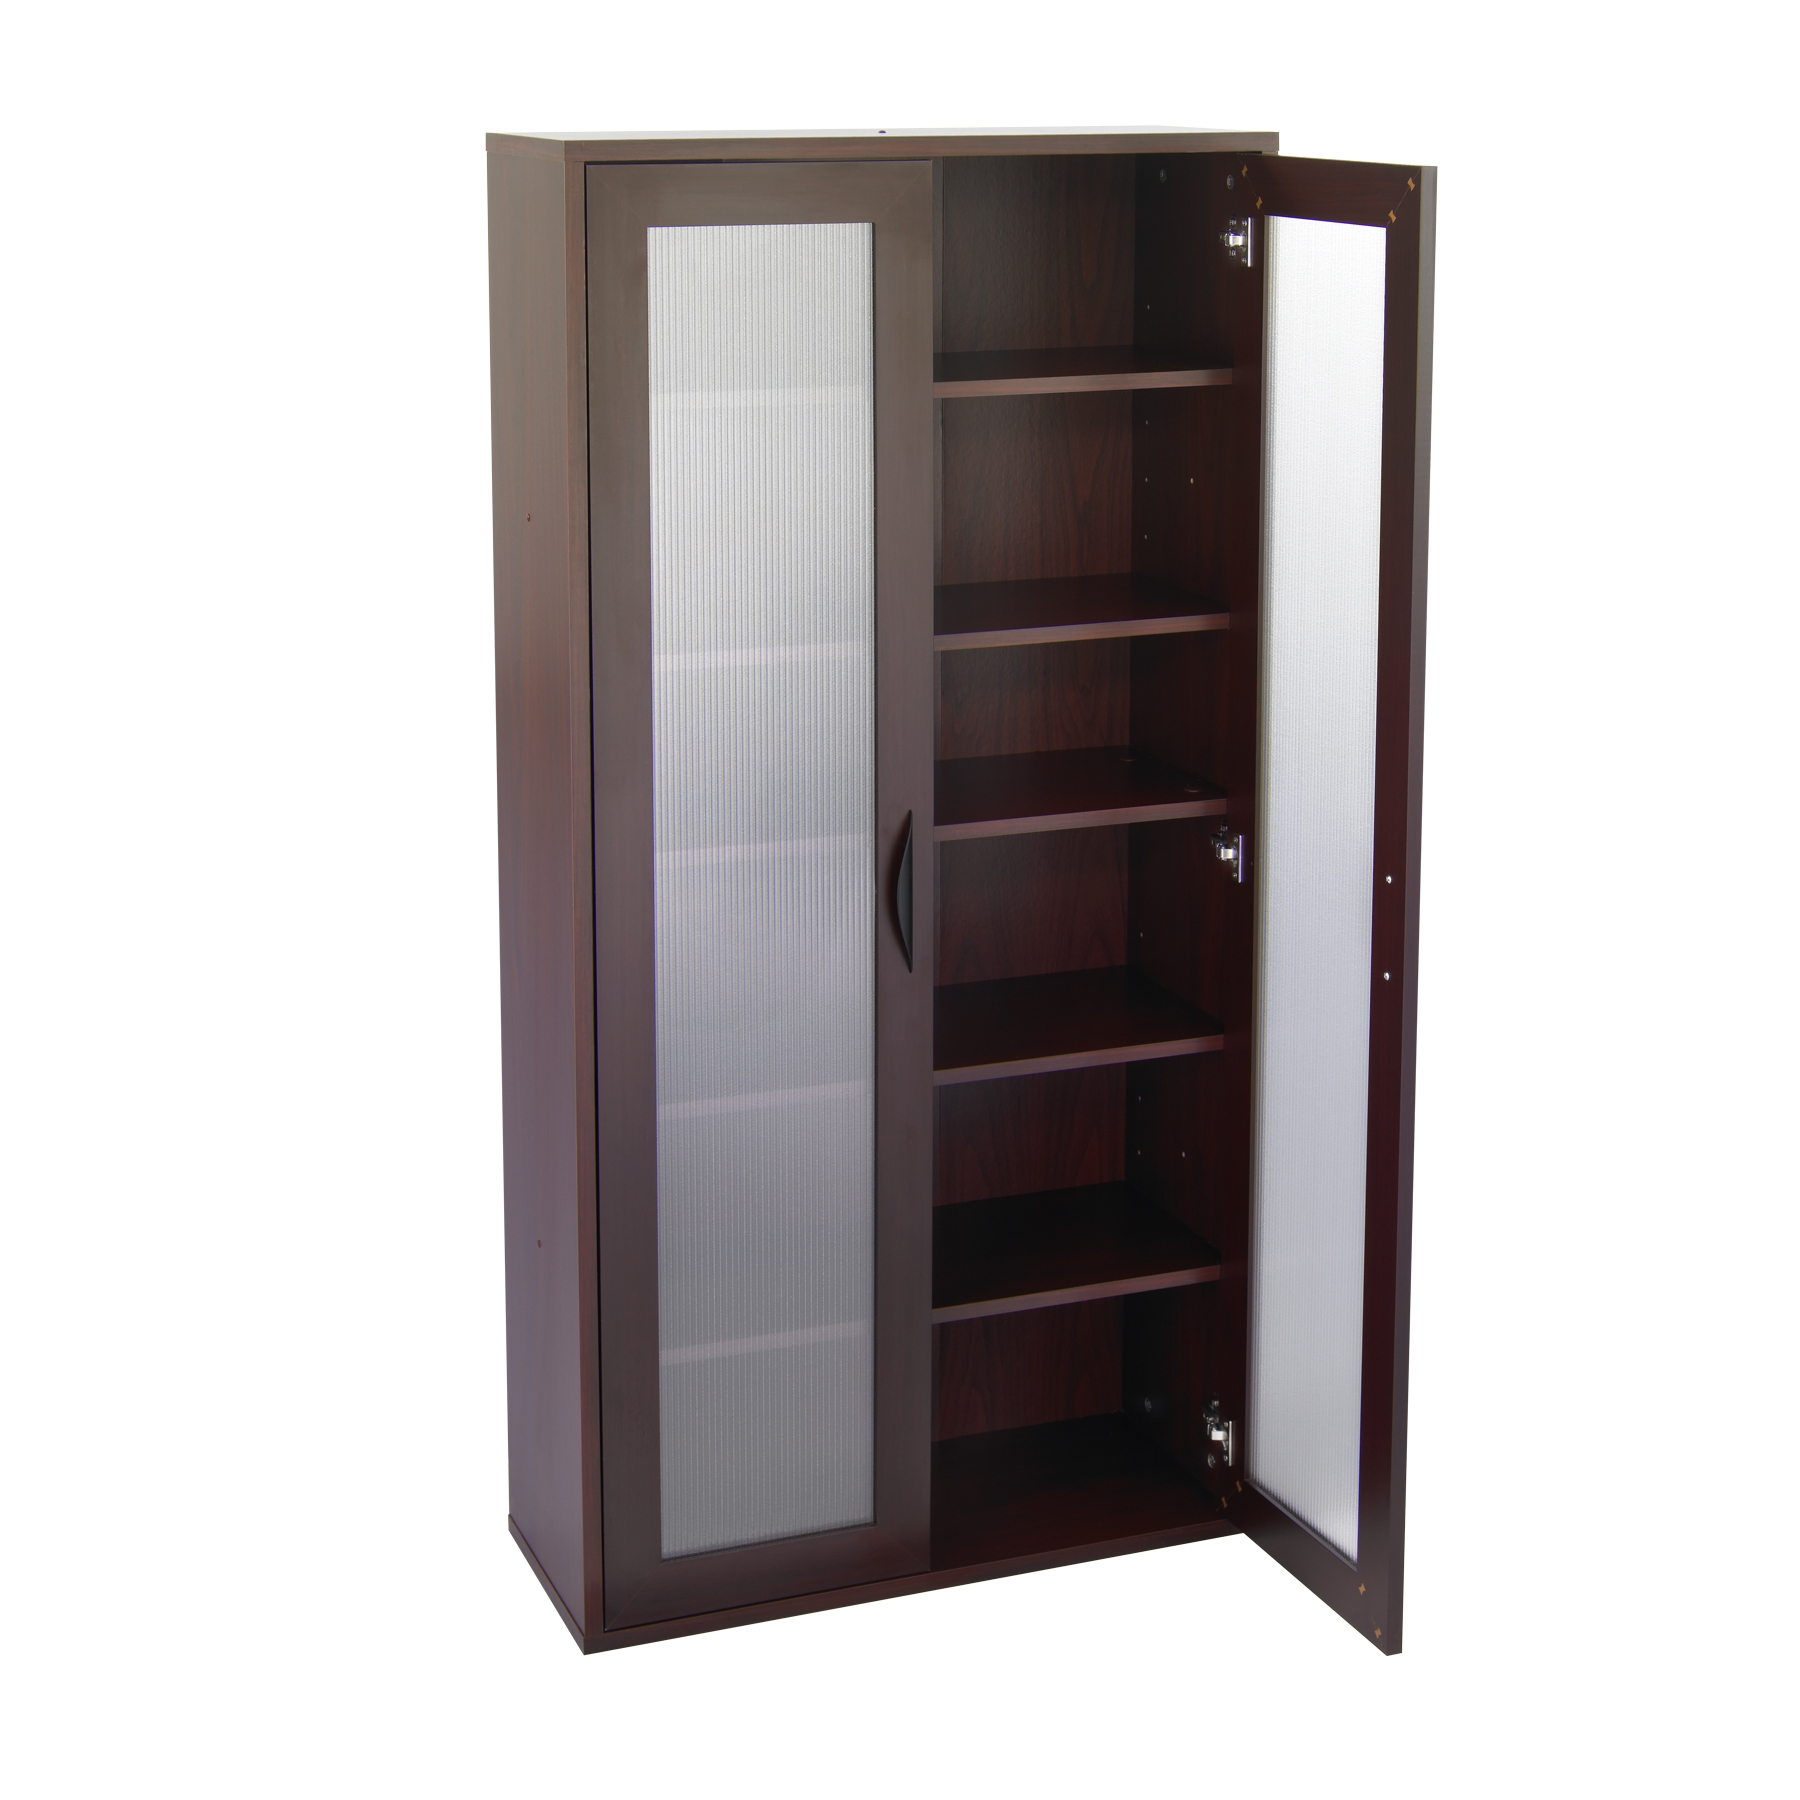 Wood Storage Cabinets With Shelves